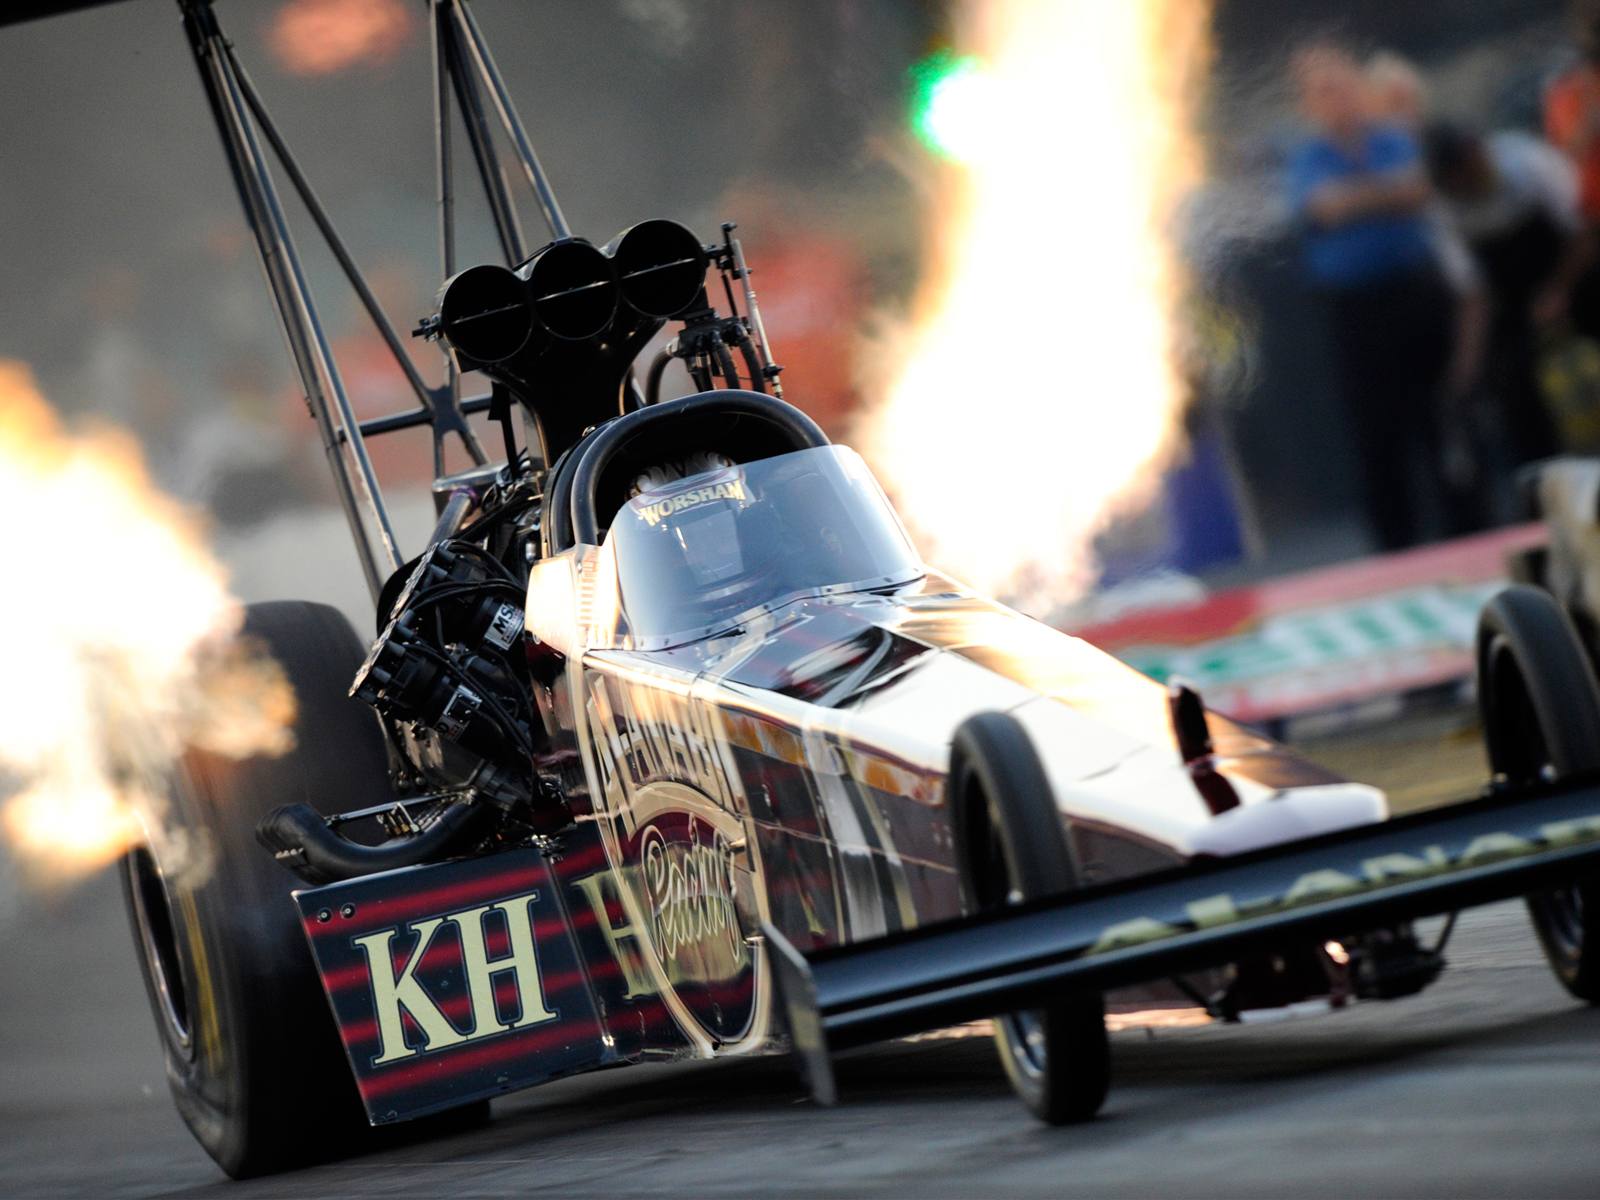 Fun Factoids How Powerful is a Top Fuel Dragster